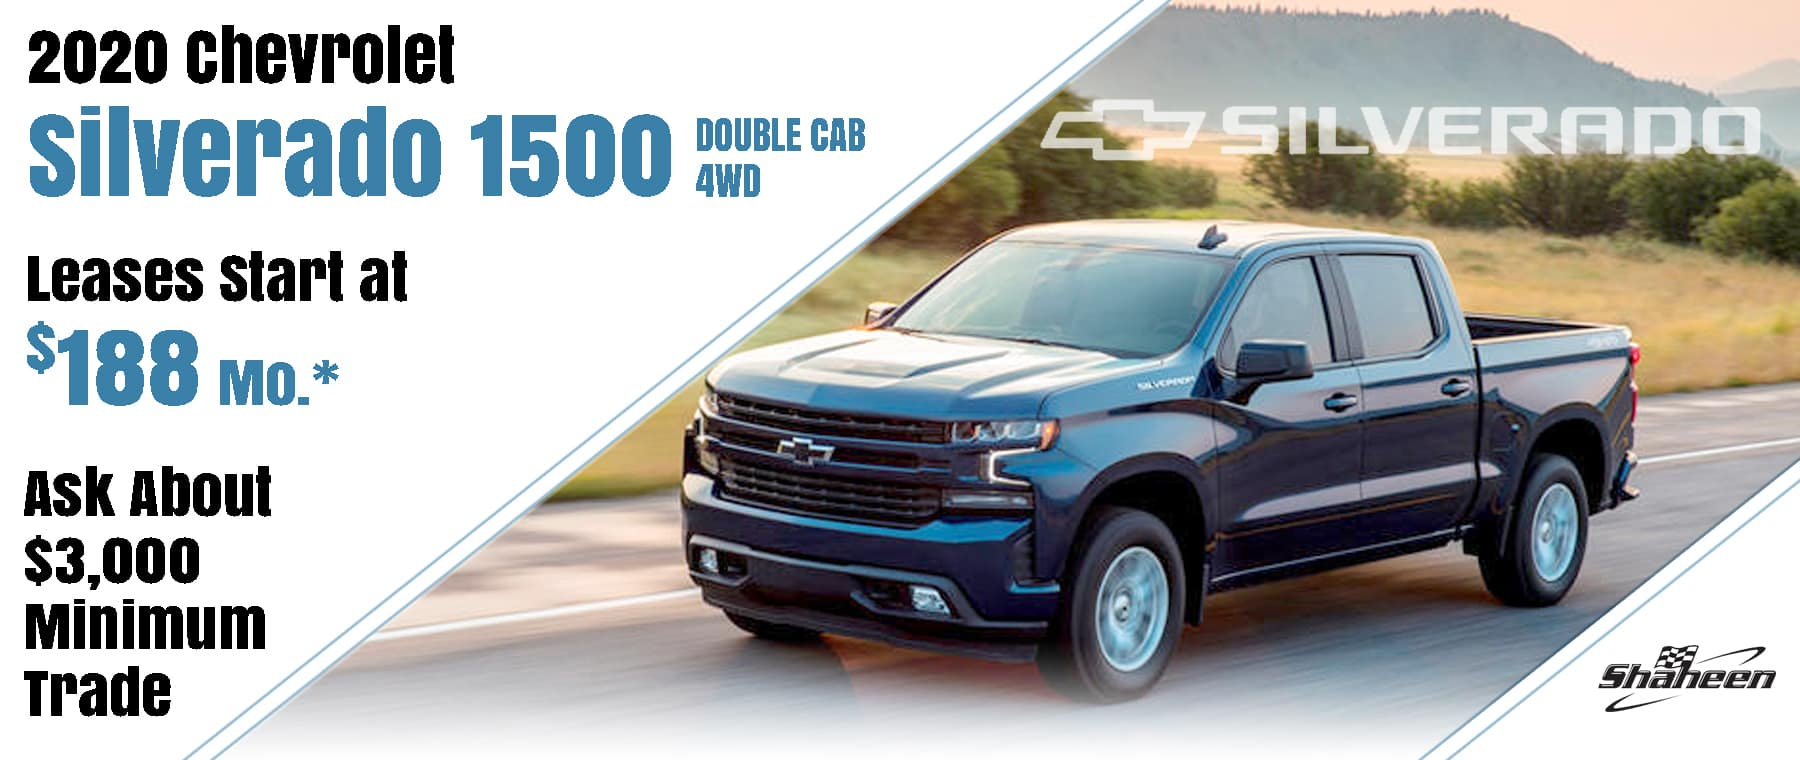 October Silverado Lease Offer $188/mo*